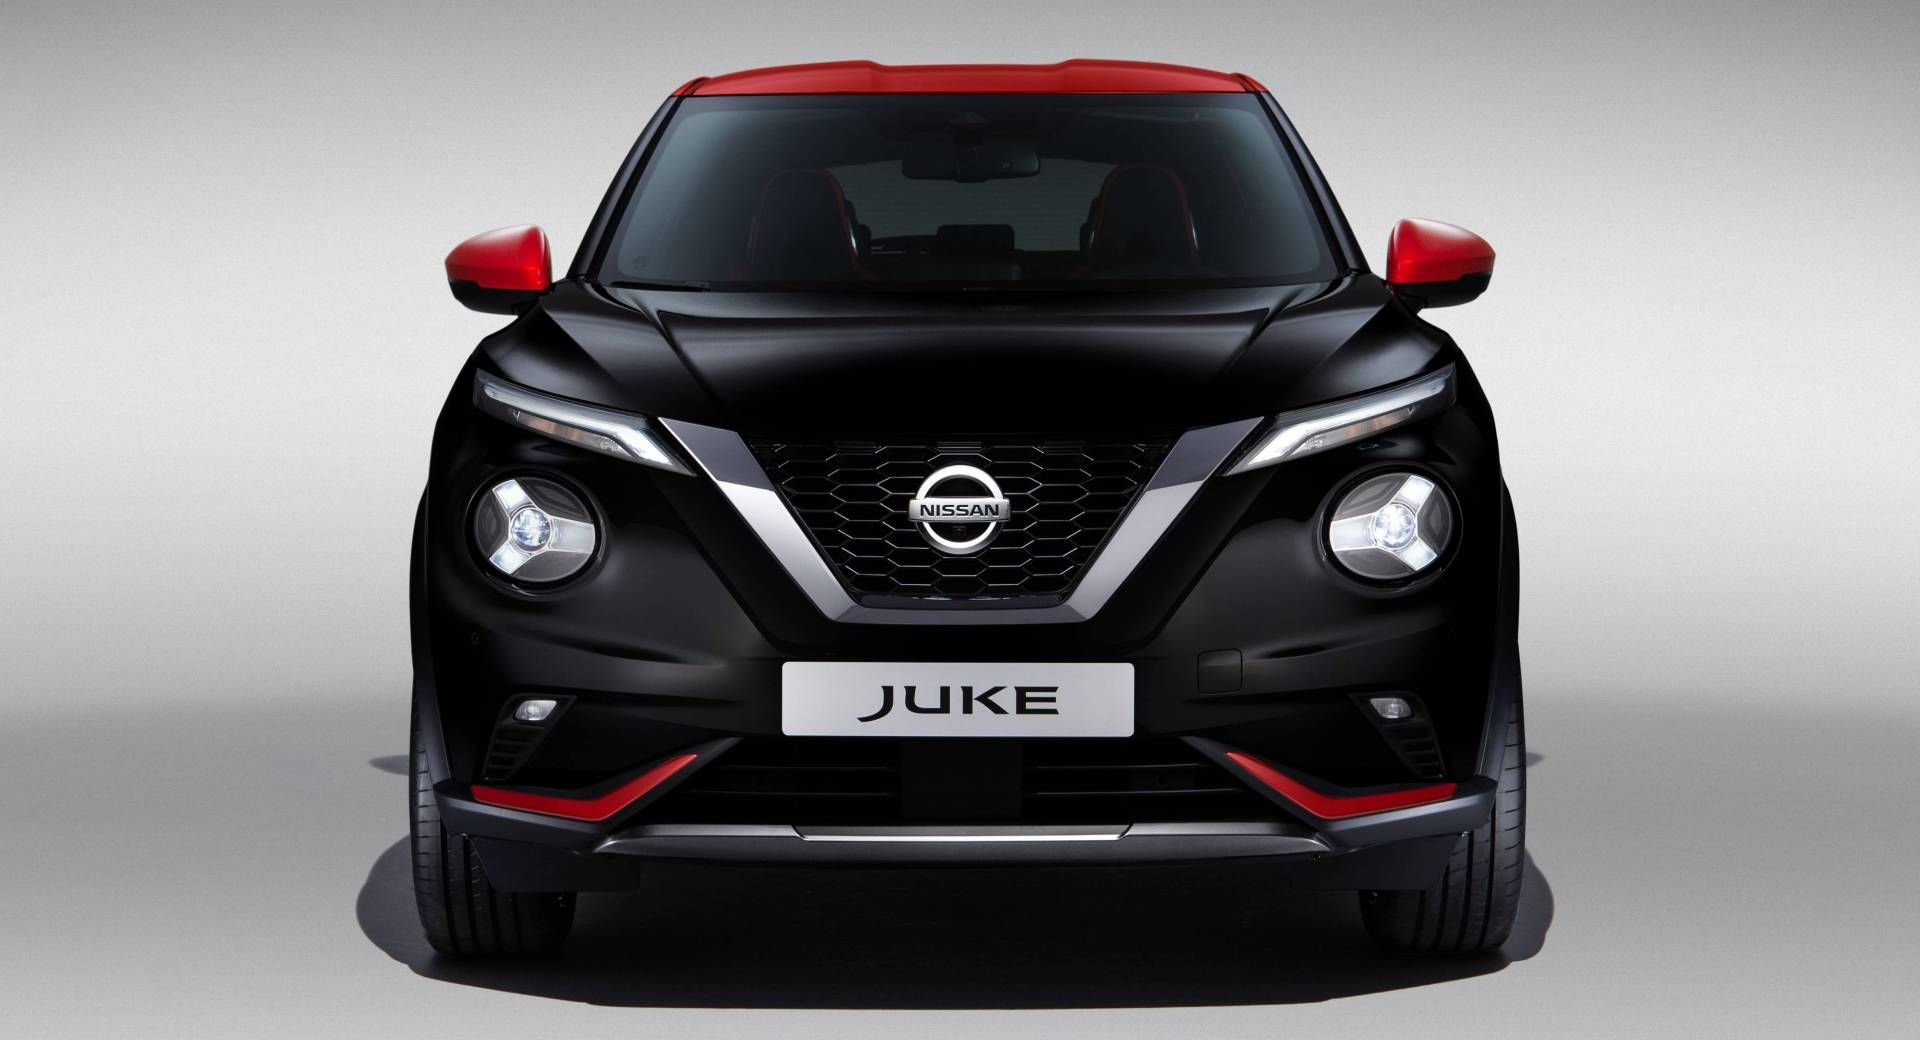 2020 Nissan Juke Priced From 17 395 In Uk 1 875 More Than Outgoing Model Newcars Nissan Nissanjuke Prices Suv Uk Nissan Juke Nissan Nissan Juke Price